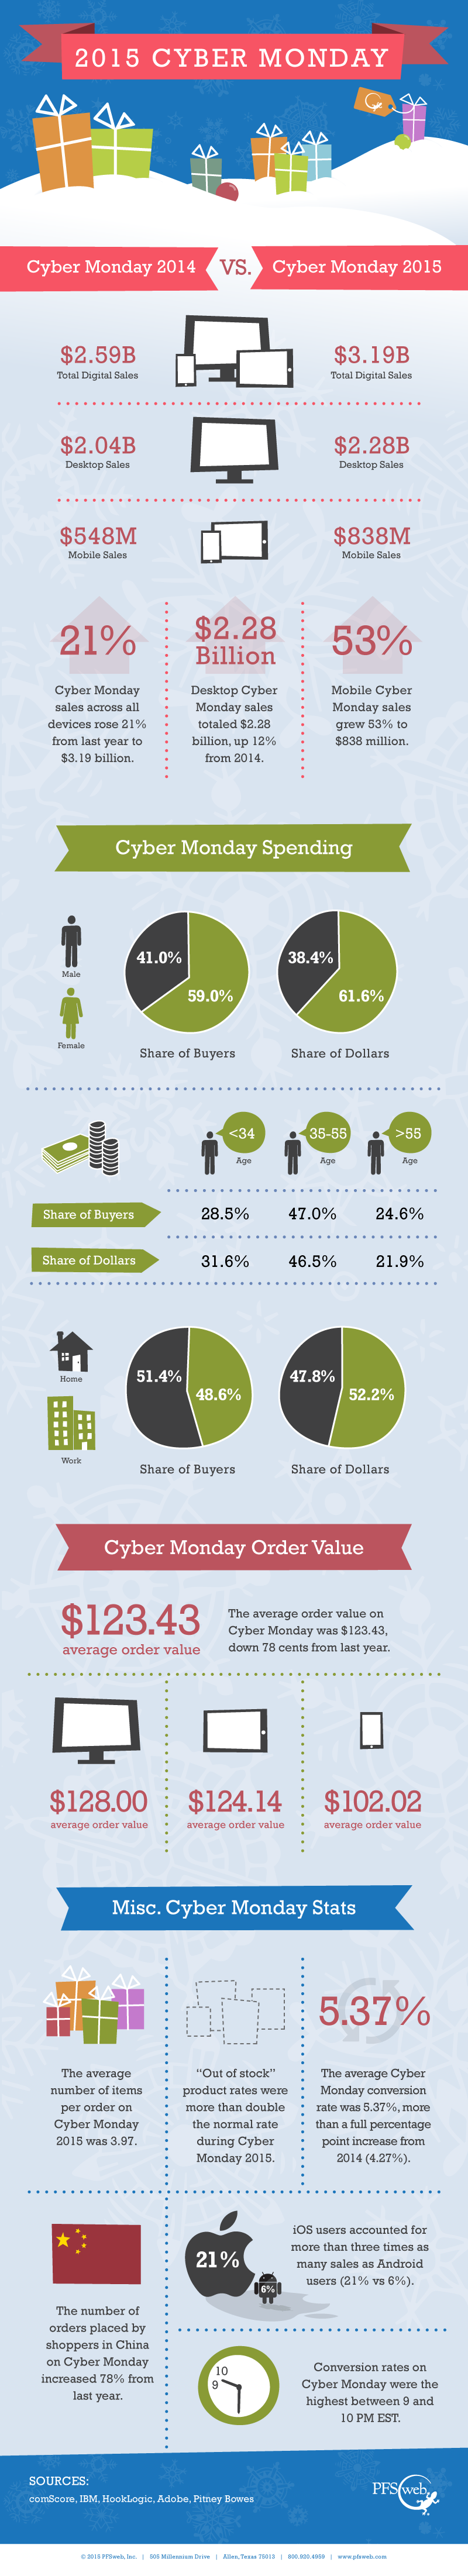 2015 Cyber Monday Infographic